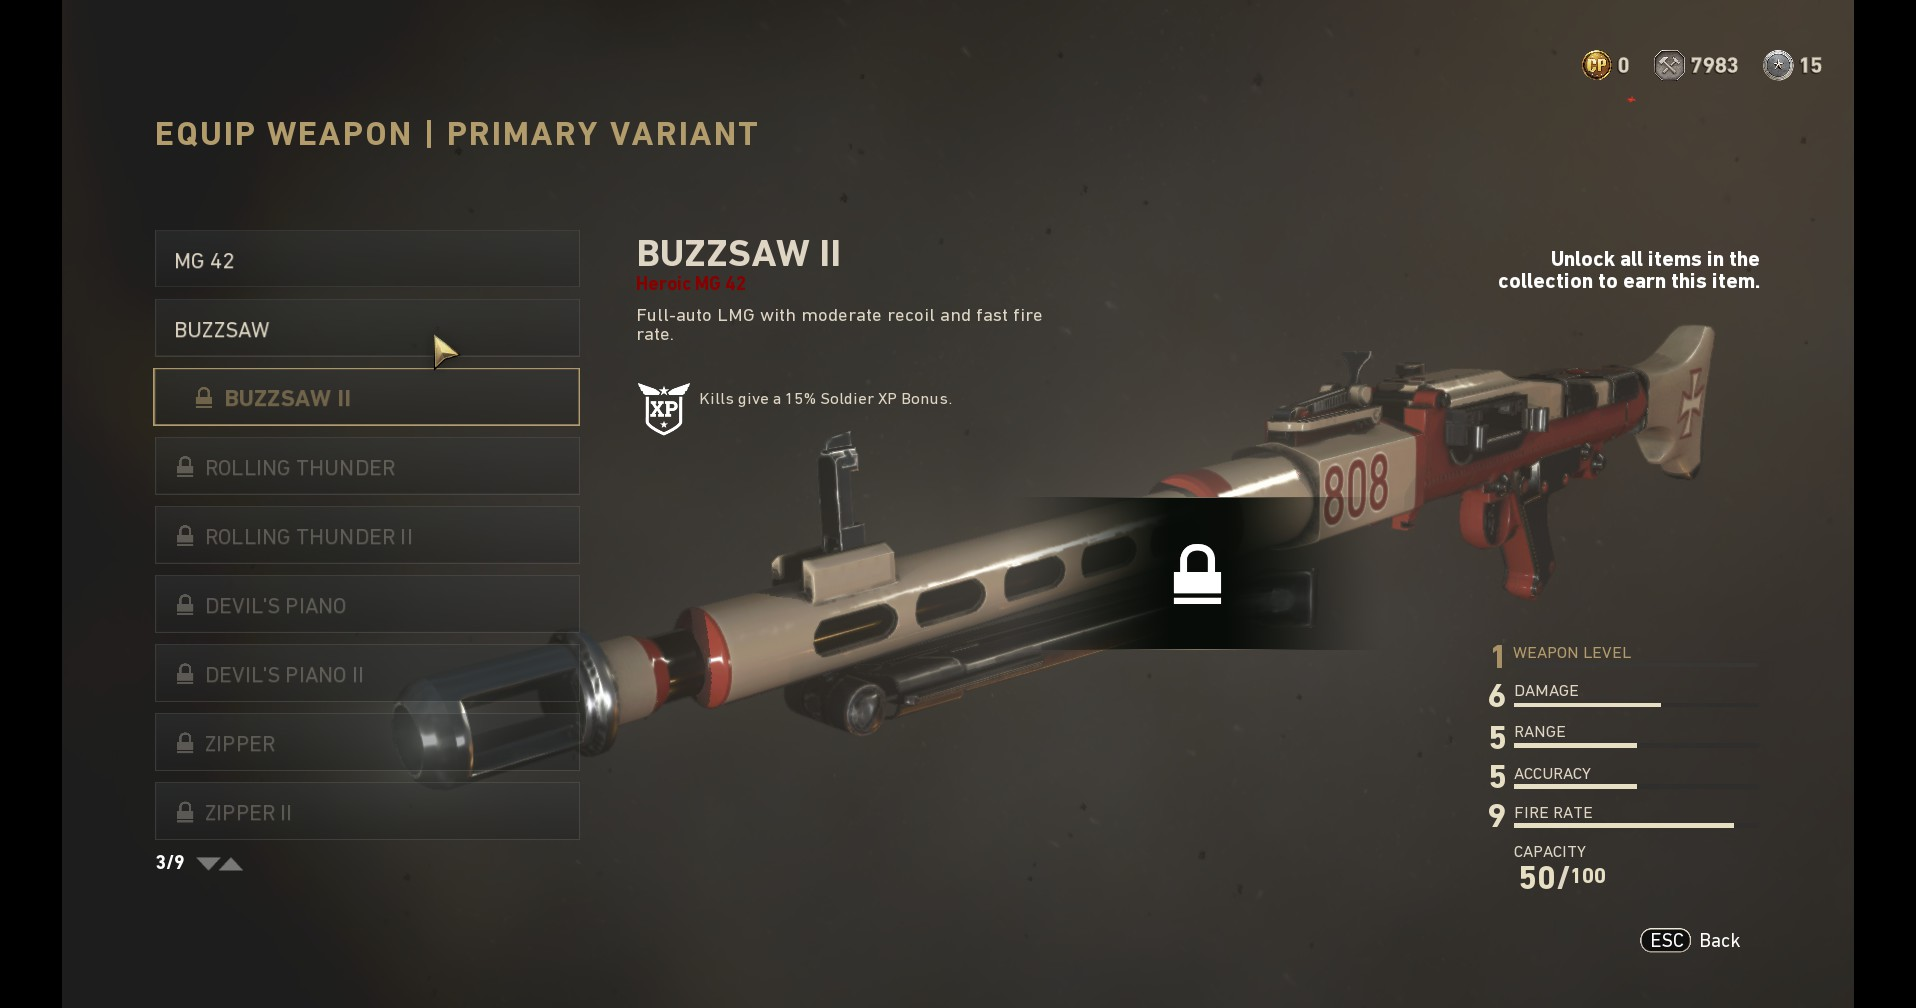 Call Of Duty Ww2 All Weapon Variants And Skins Currently In The Game Vg247